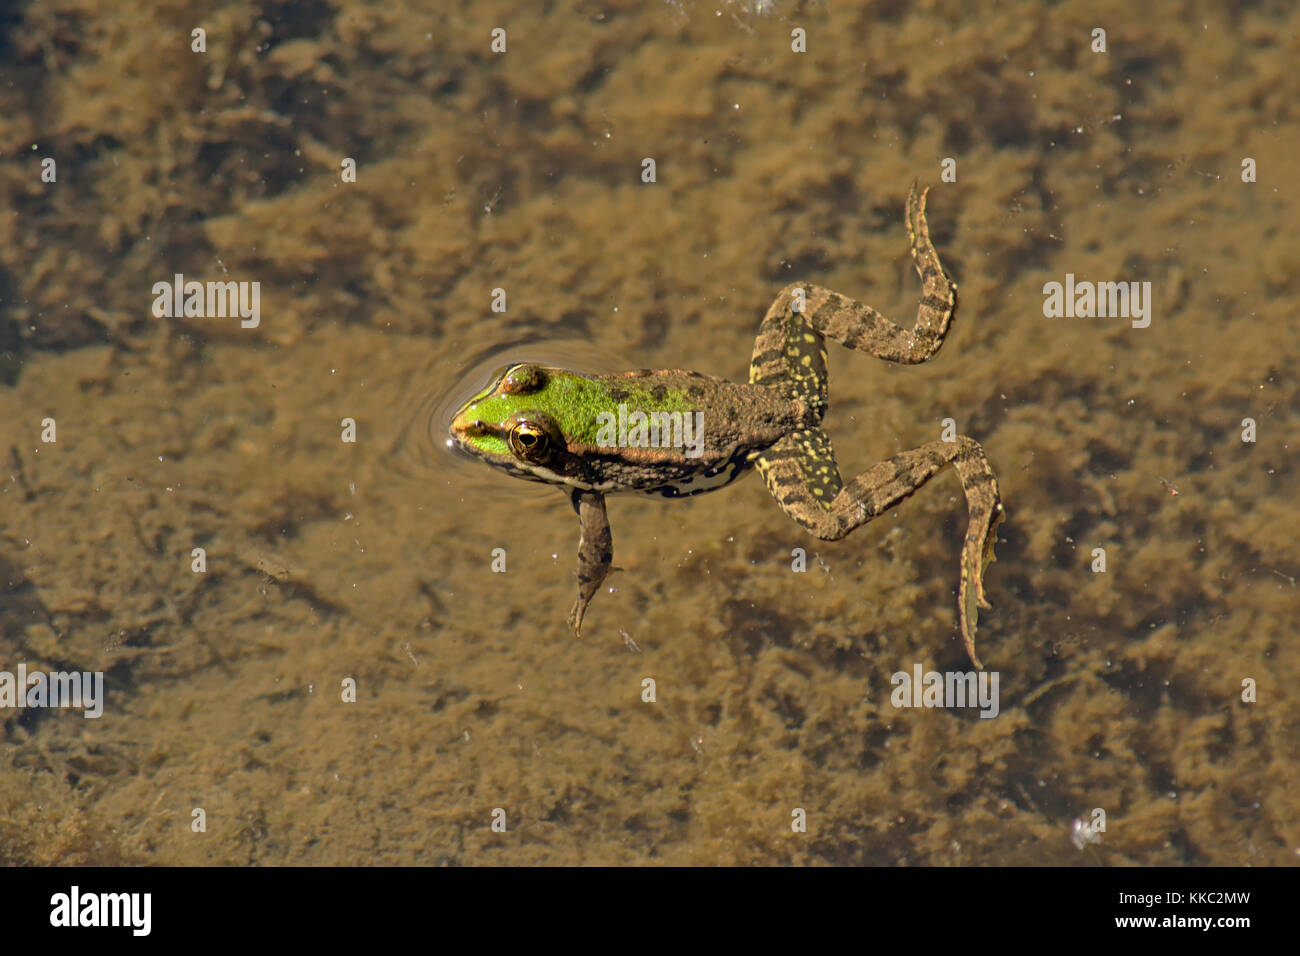 Frog swimming in the pond with legs wide open, view from above Anura - Stock Image